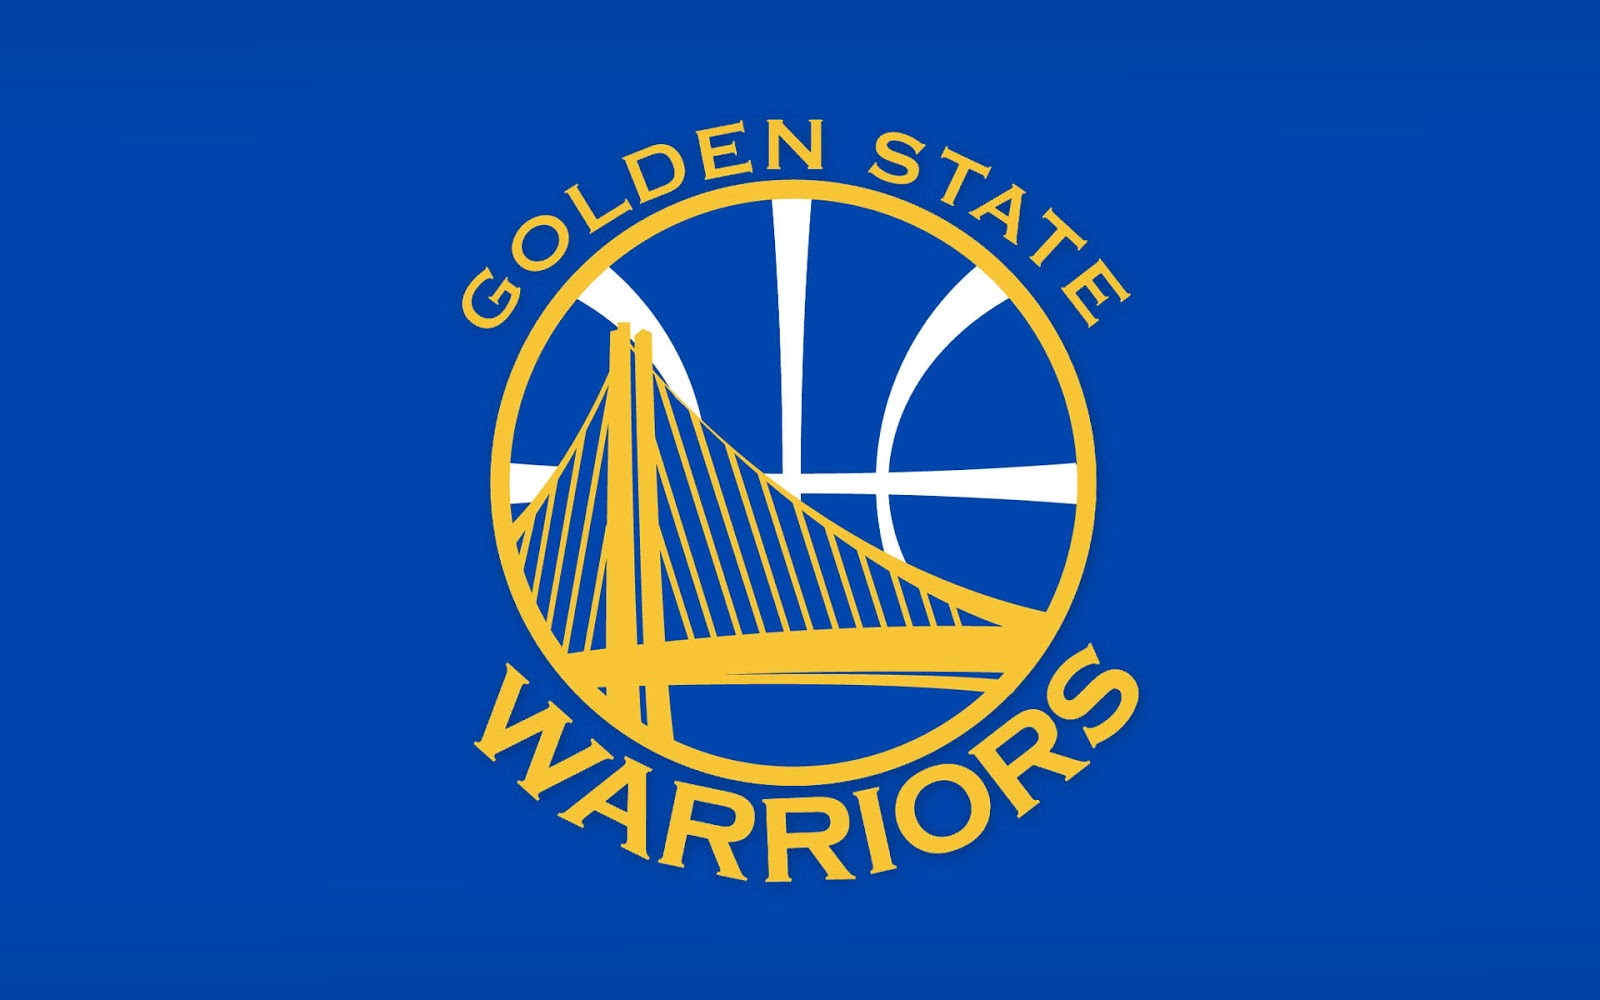 golden state warriors championship iphone wallpaper